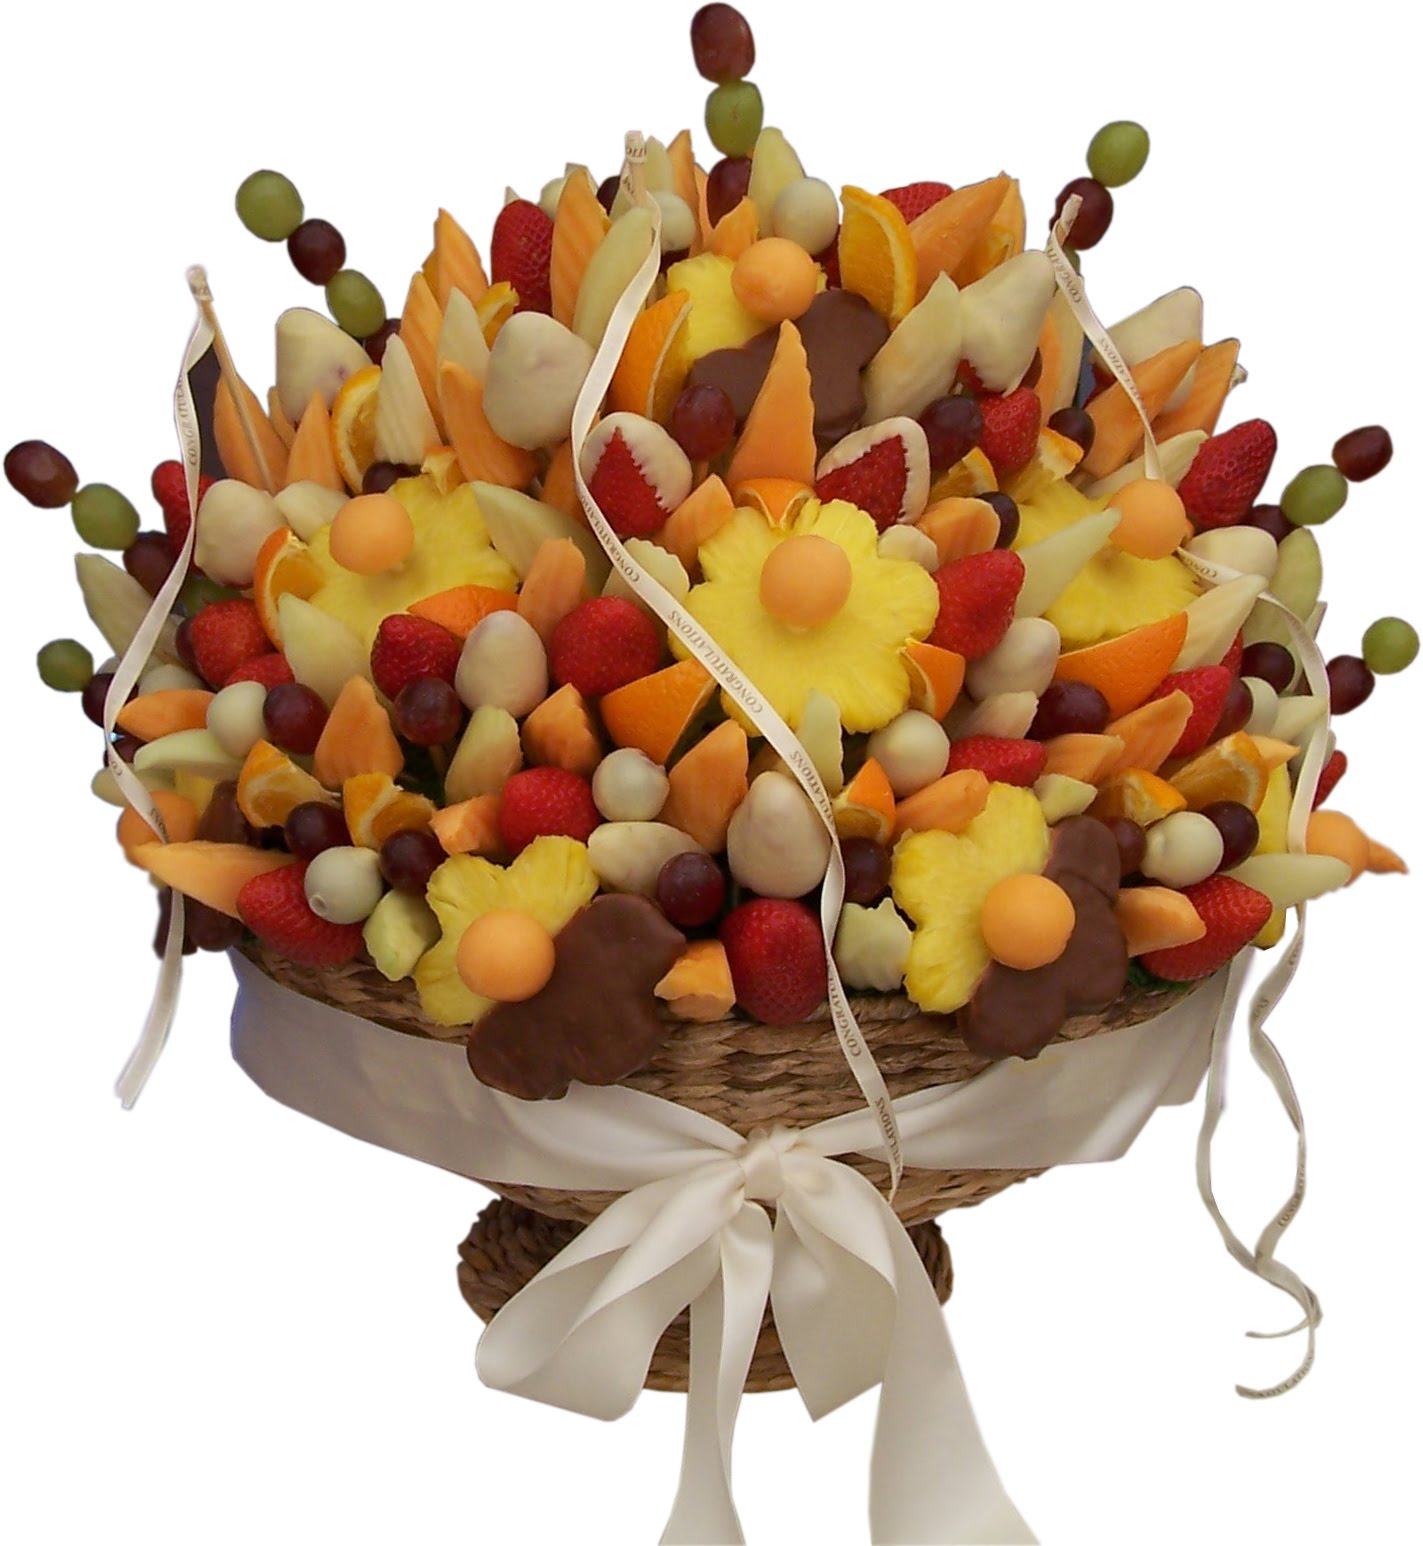 Weddings edible fruit bouquets Fruit bouquet